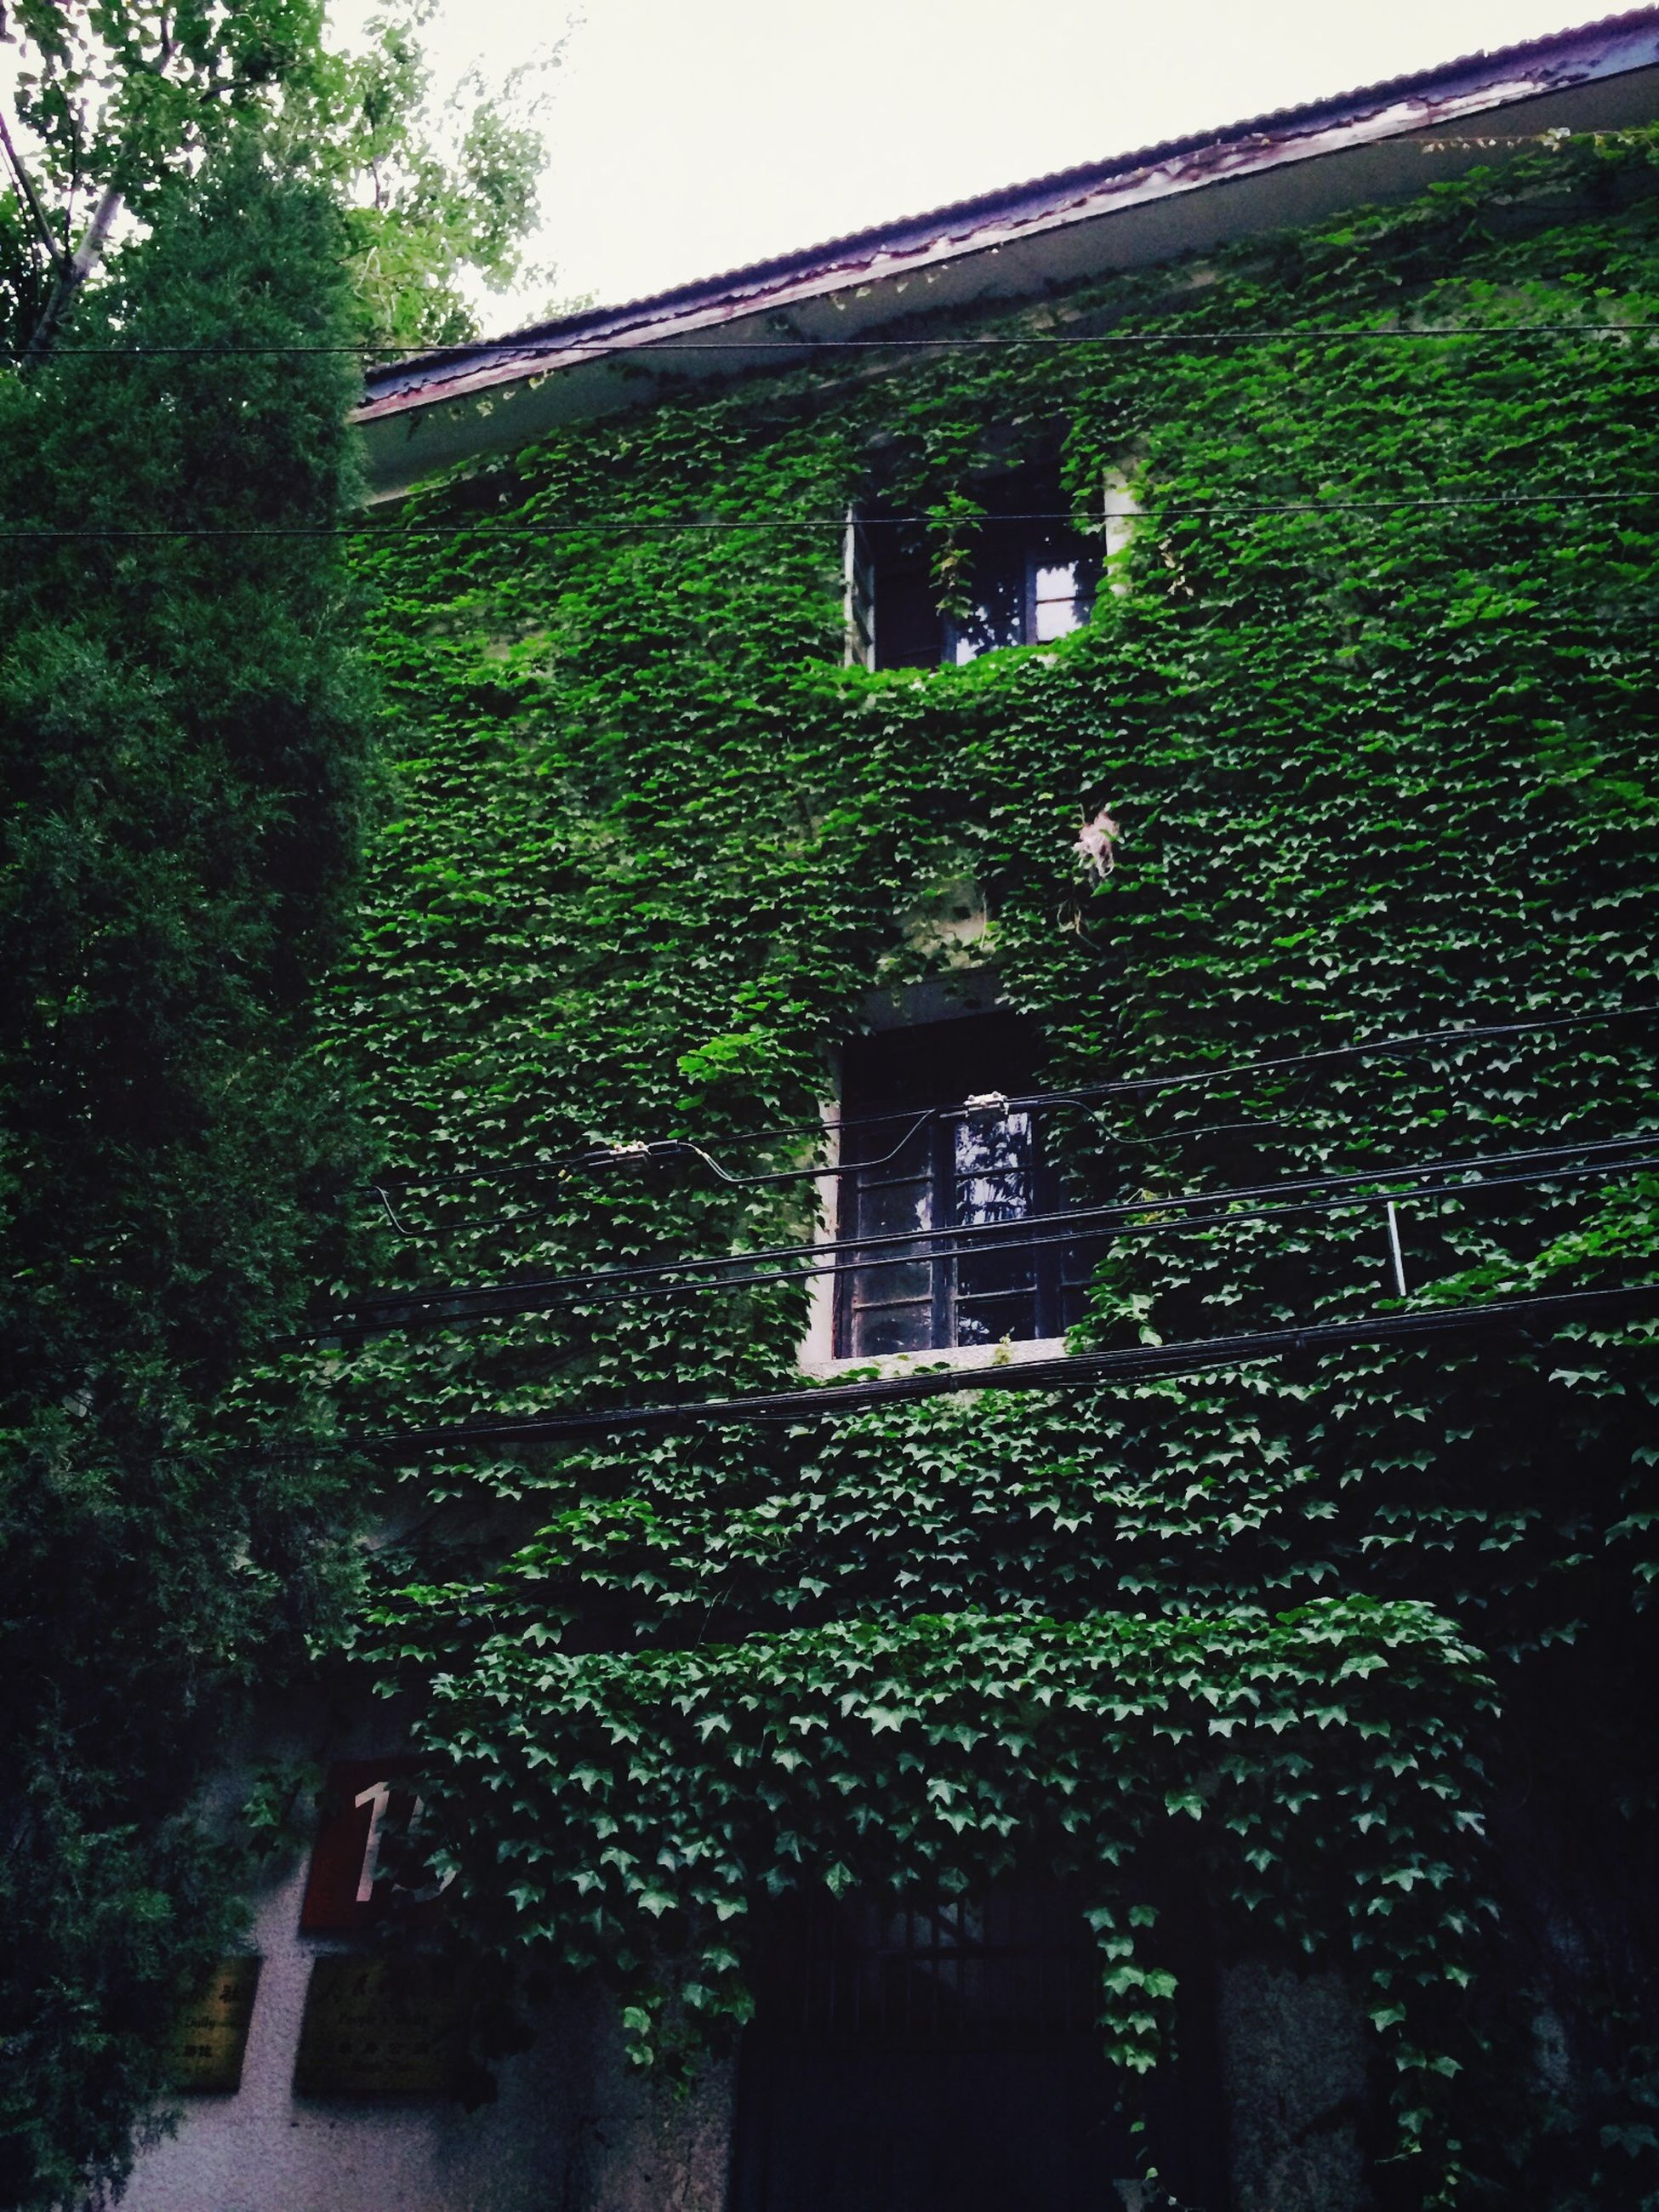 built structure, architecture, building exterior, growth, house, plant, green color, tree, window, ivy, residential structure, day, nature, no people, sunlight, outdoors, residential building, grass, growing, front or back yard